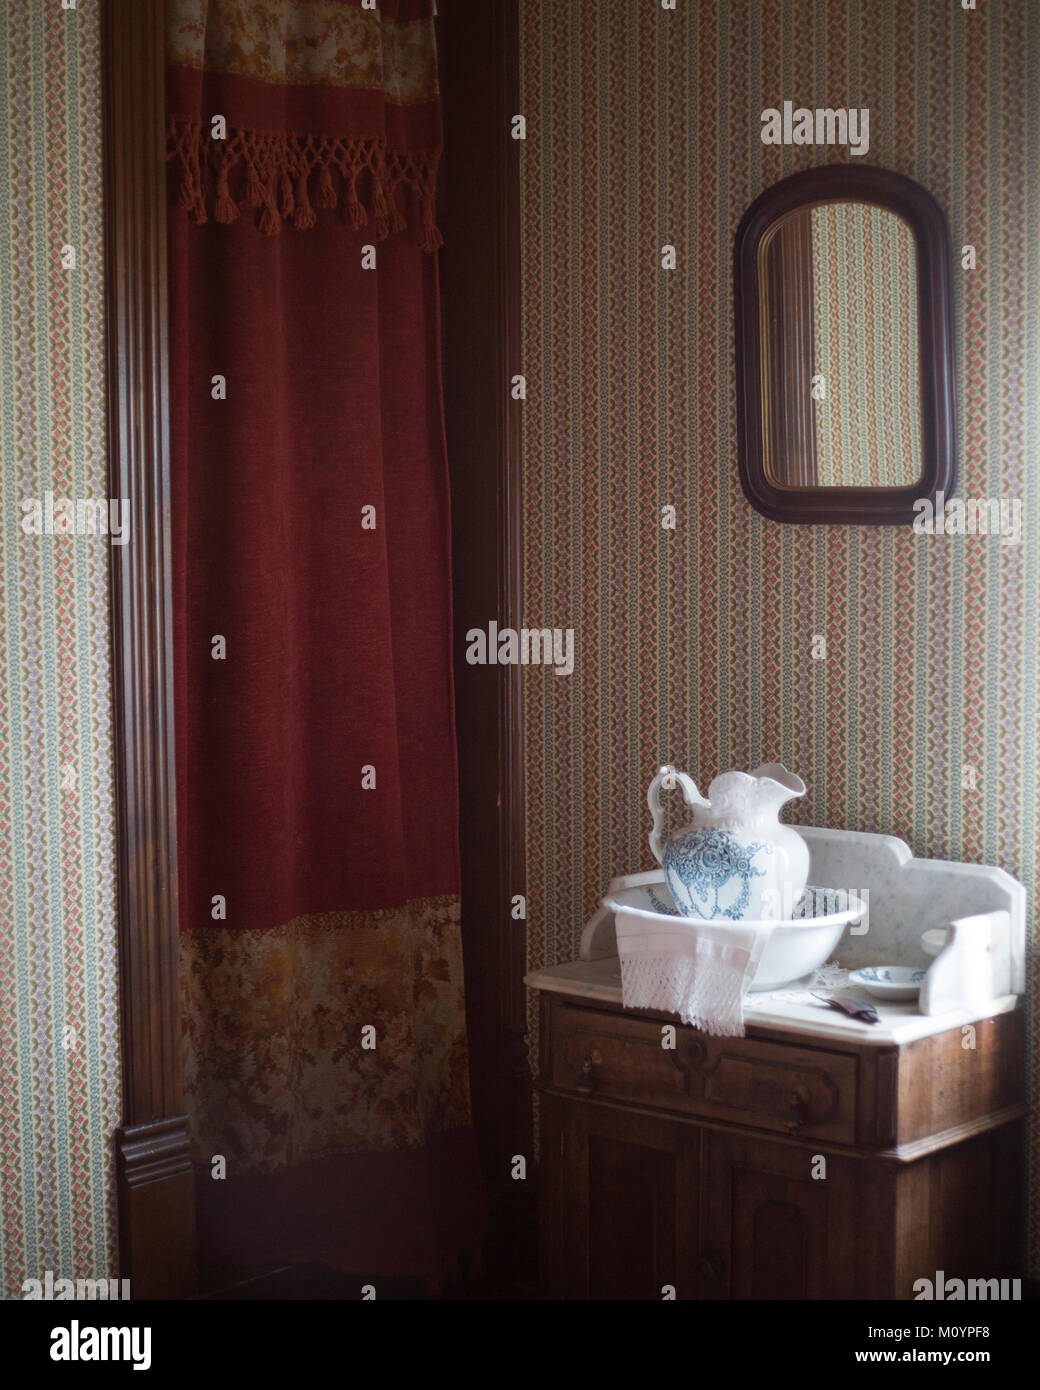 Antique pitcher and wash bowl set in bedroom of 1887 house replica at Heritage Park Historical Village - Stock Image